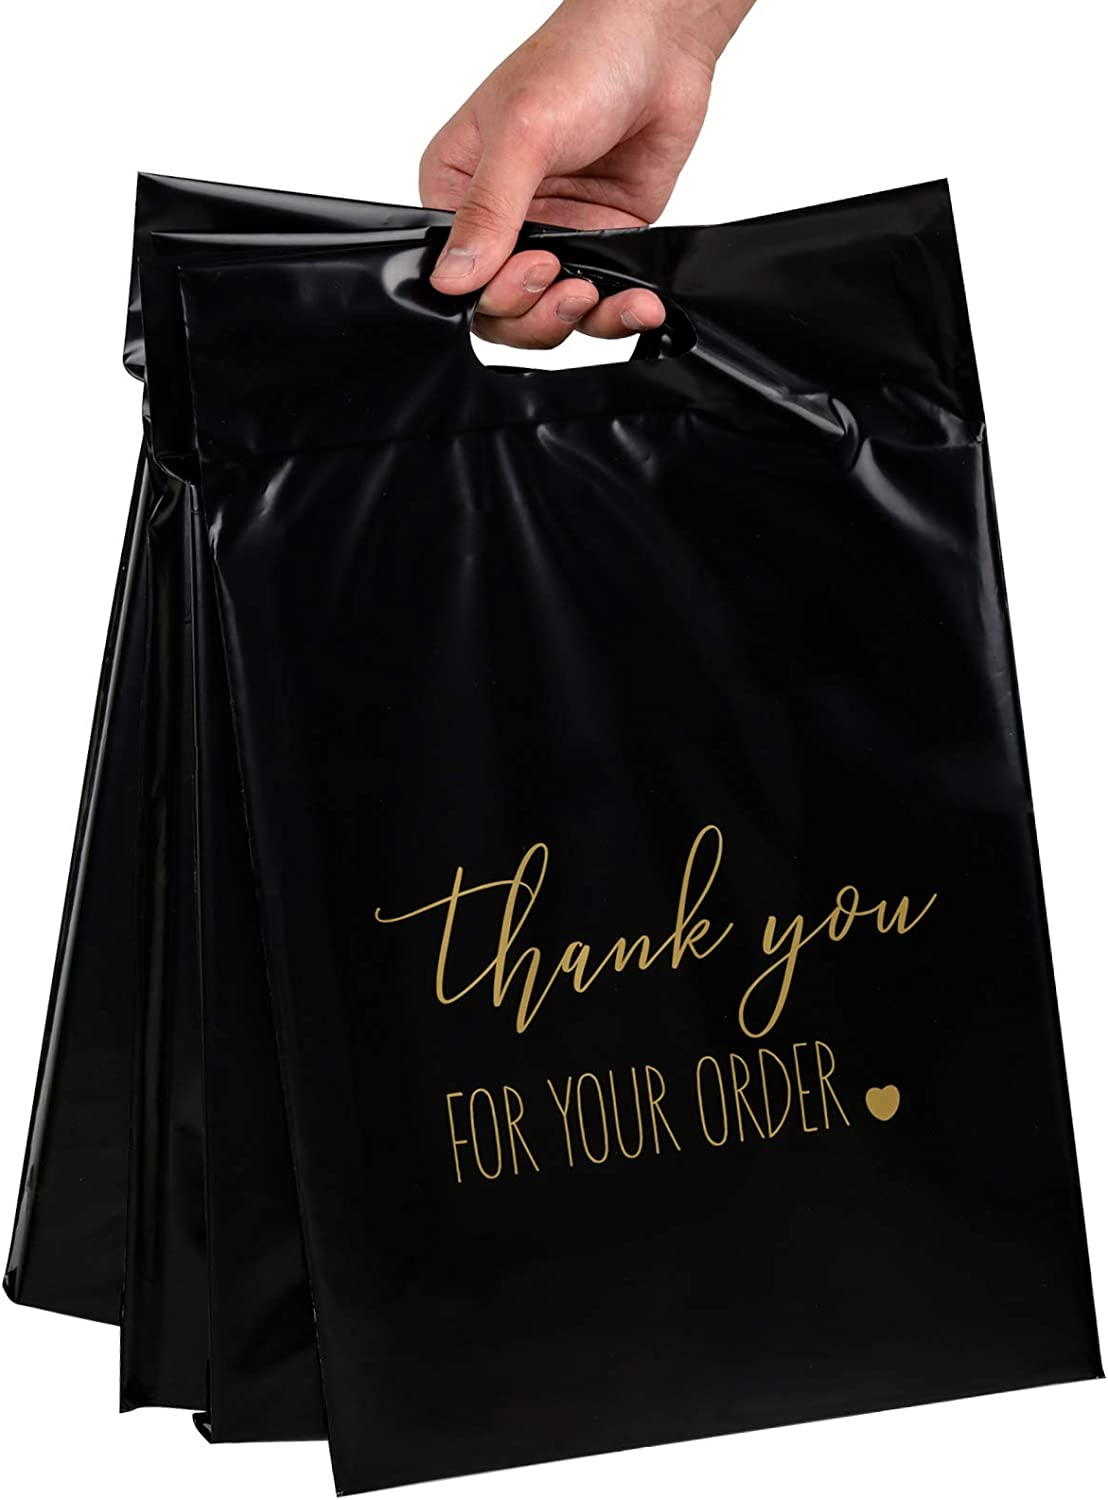 RUSPEPA Poly Mailers Shipping Bags Max 54% OFF with Thank you Elegant Busines Handle